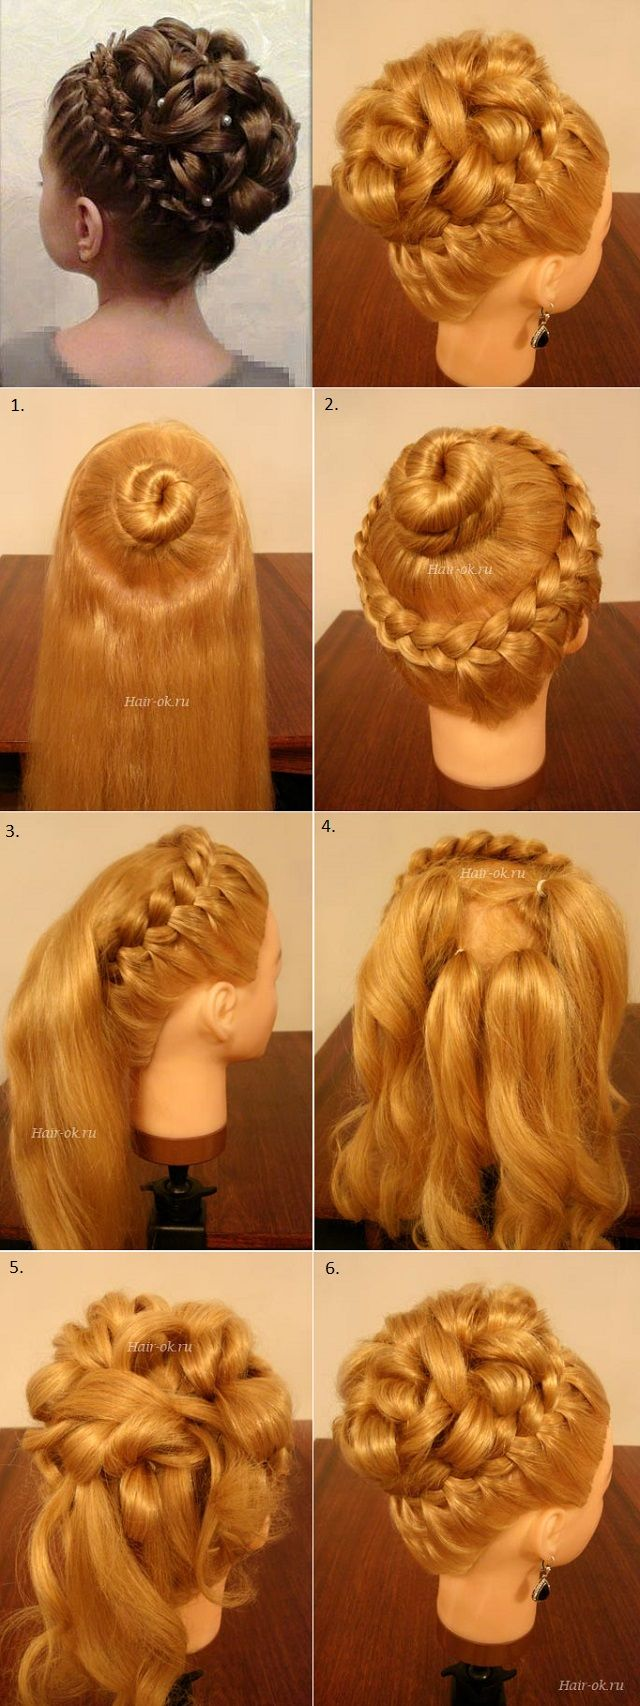 hairstyle with curls diy | hair style, updos and makeup